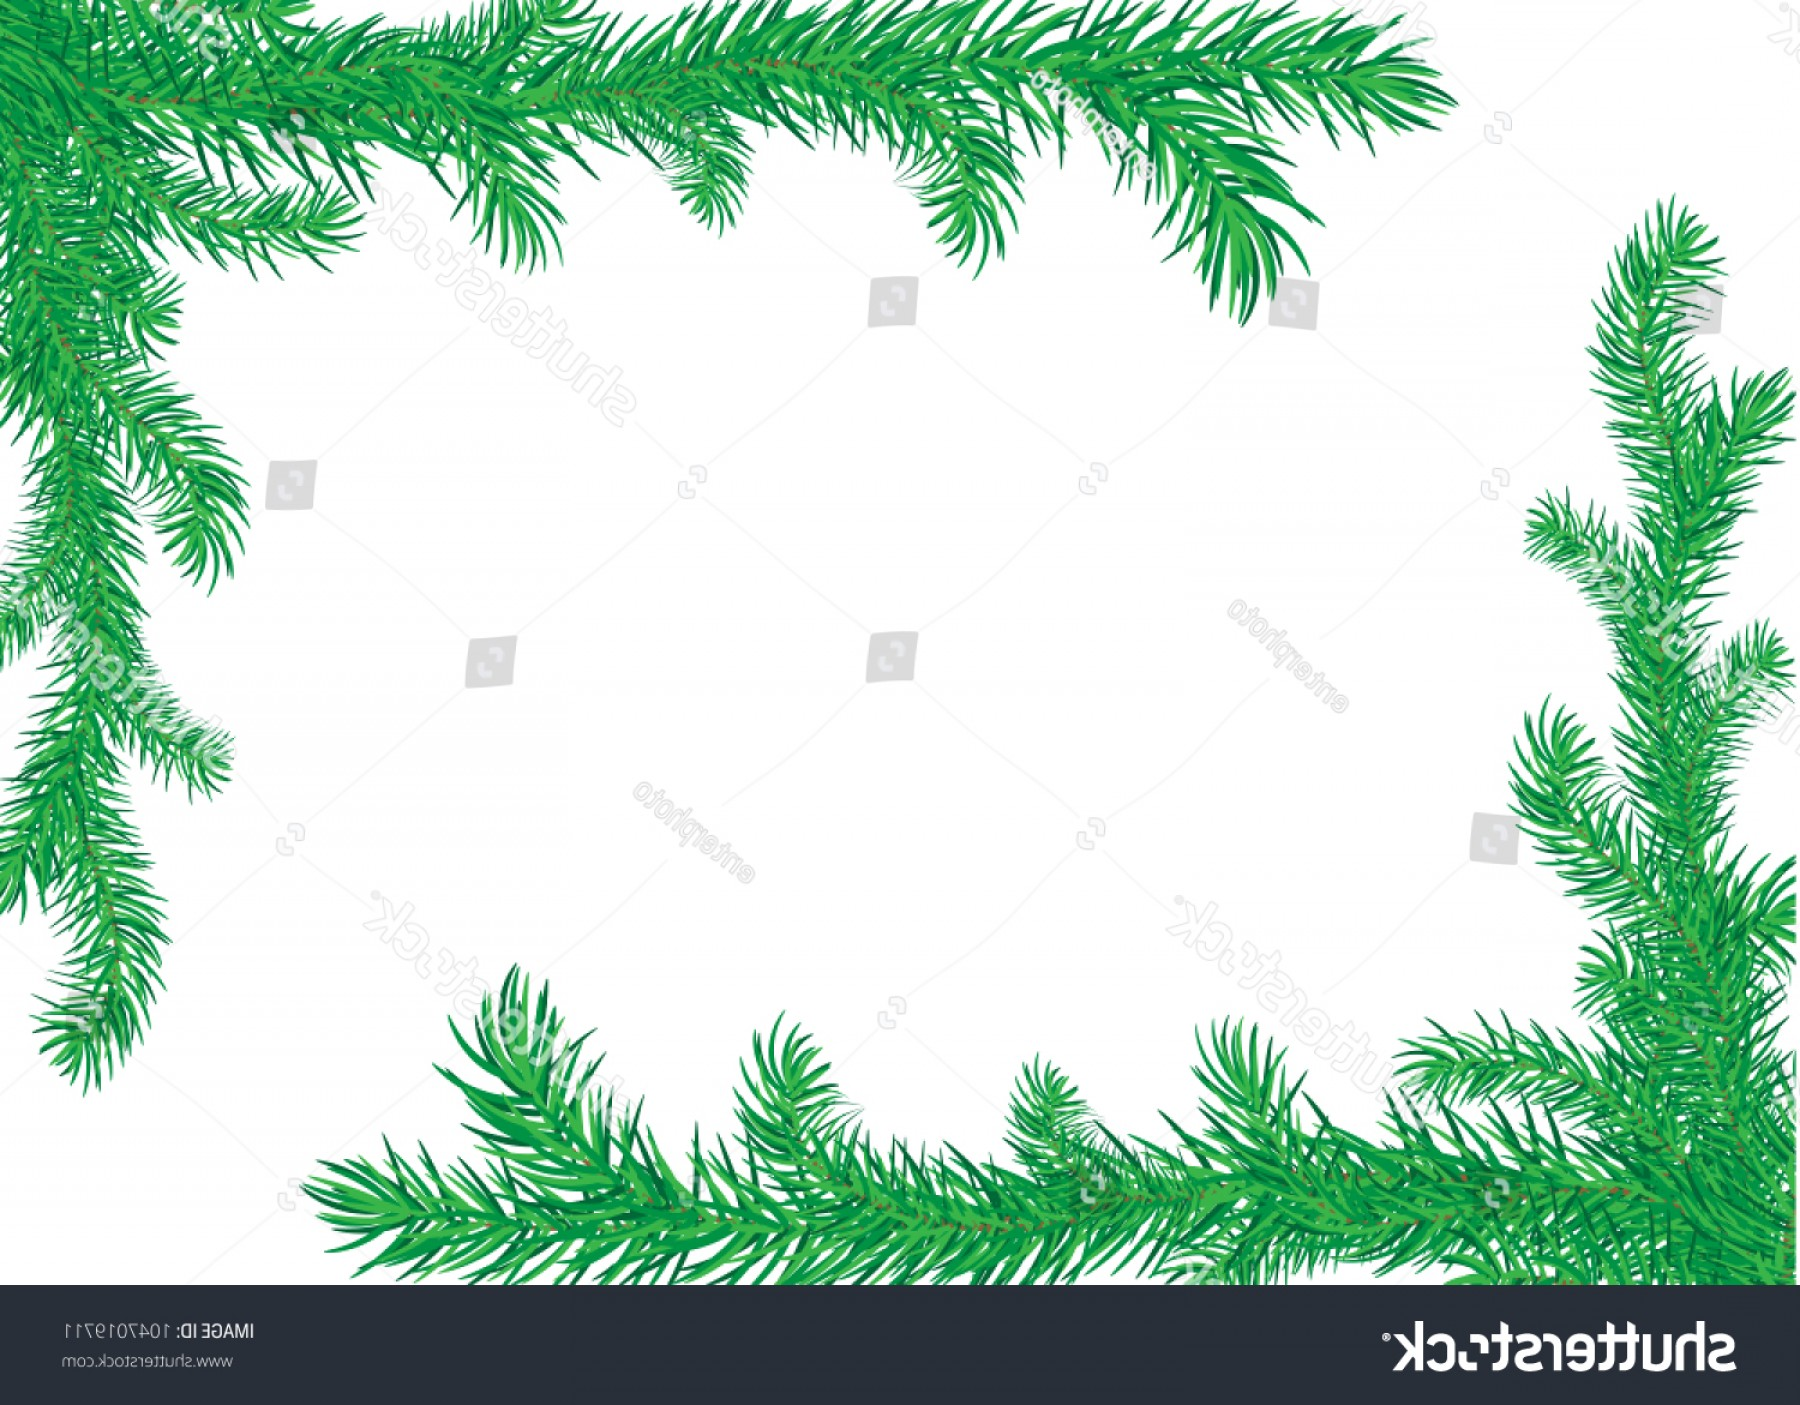 Pine Leaf Vector: Pine Leaf Frame Nature Decorative Border